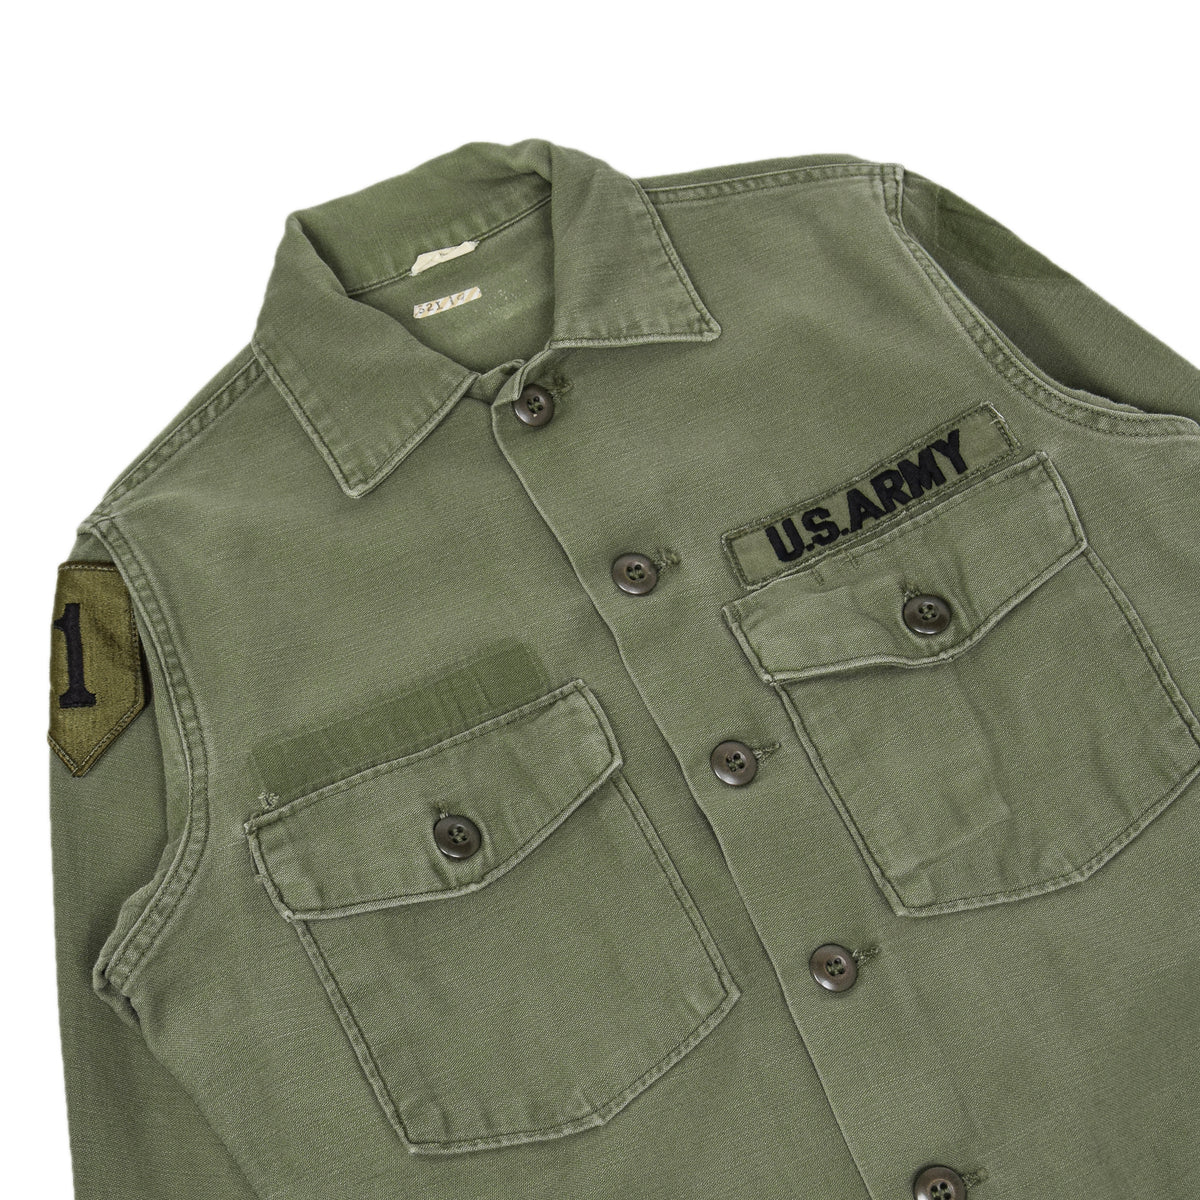 Vintage 70s Vietnam US Army Cotton Sateen Military Shirt OG-107 Olive Green XS chest